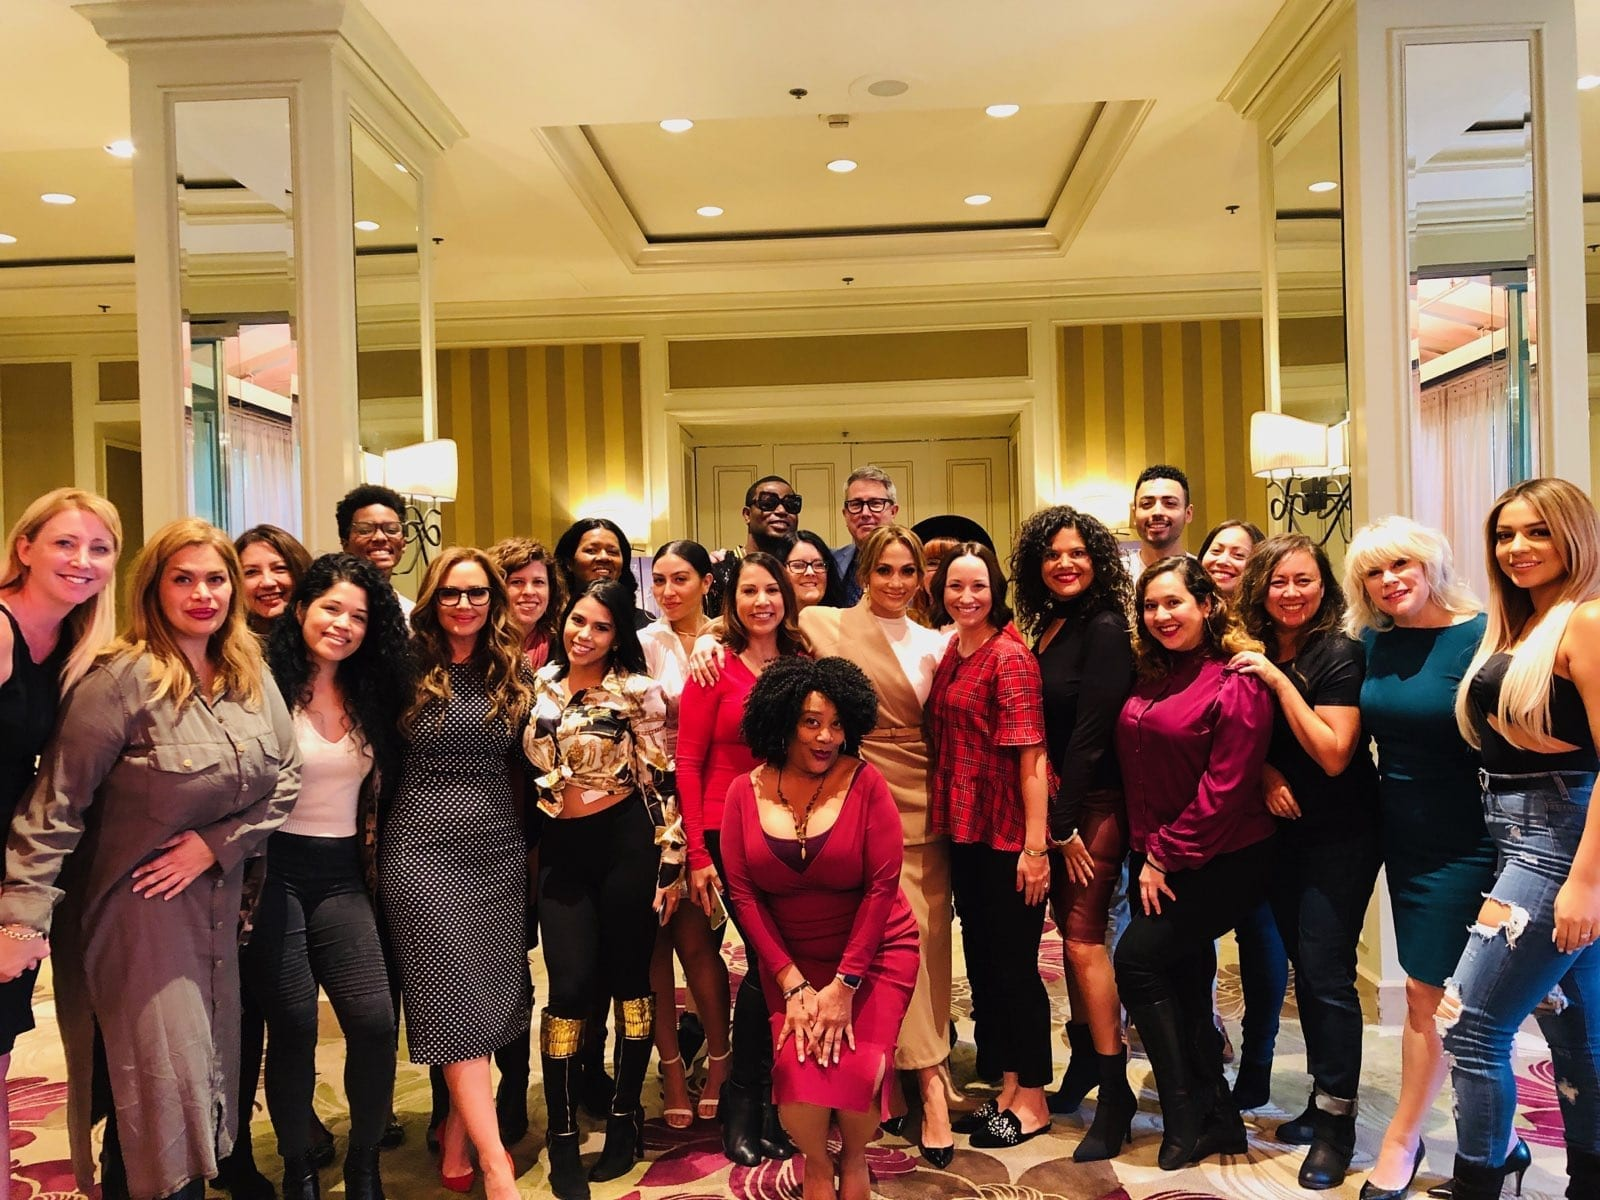 Jennifer Lopez with arm around Michelle Rivera of Michelle Rivera Lifestyle at Press Junket. Leah Remini in front far left side.